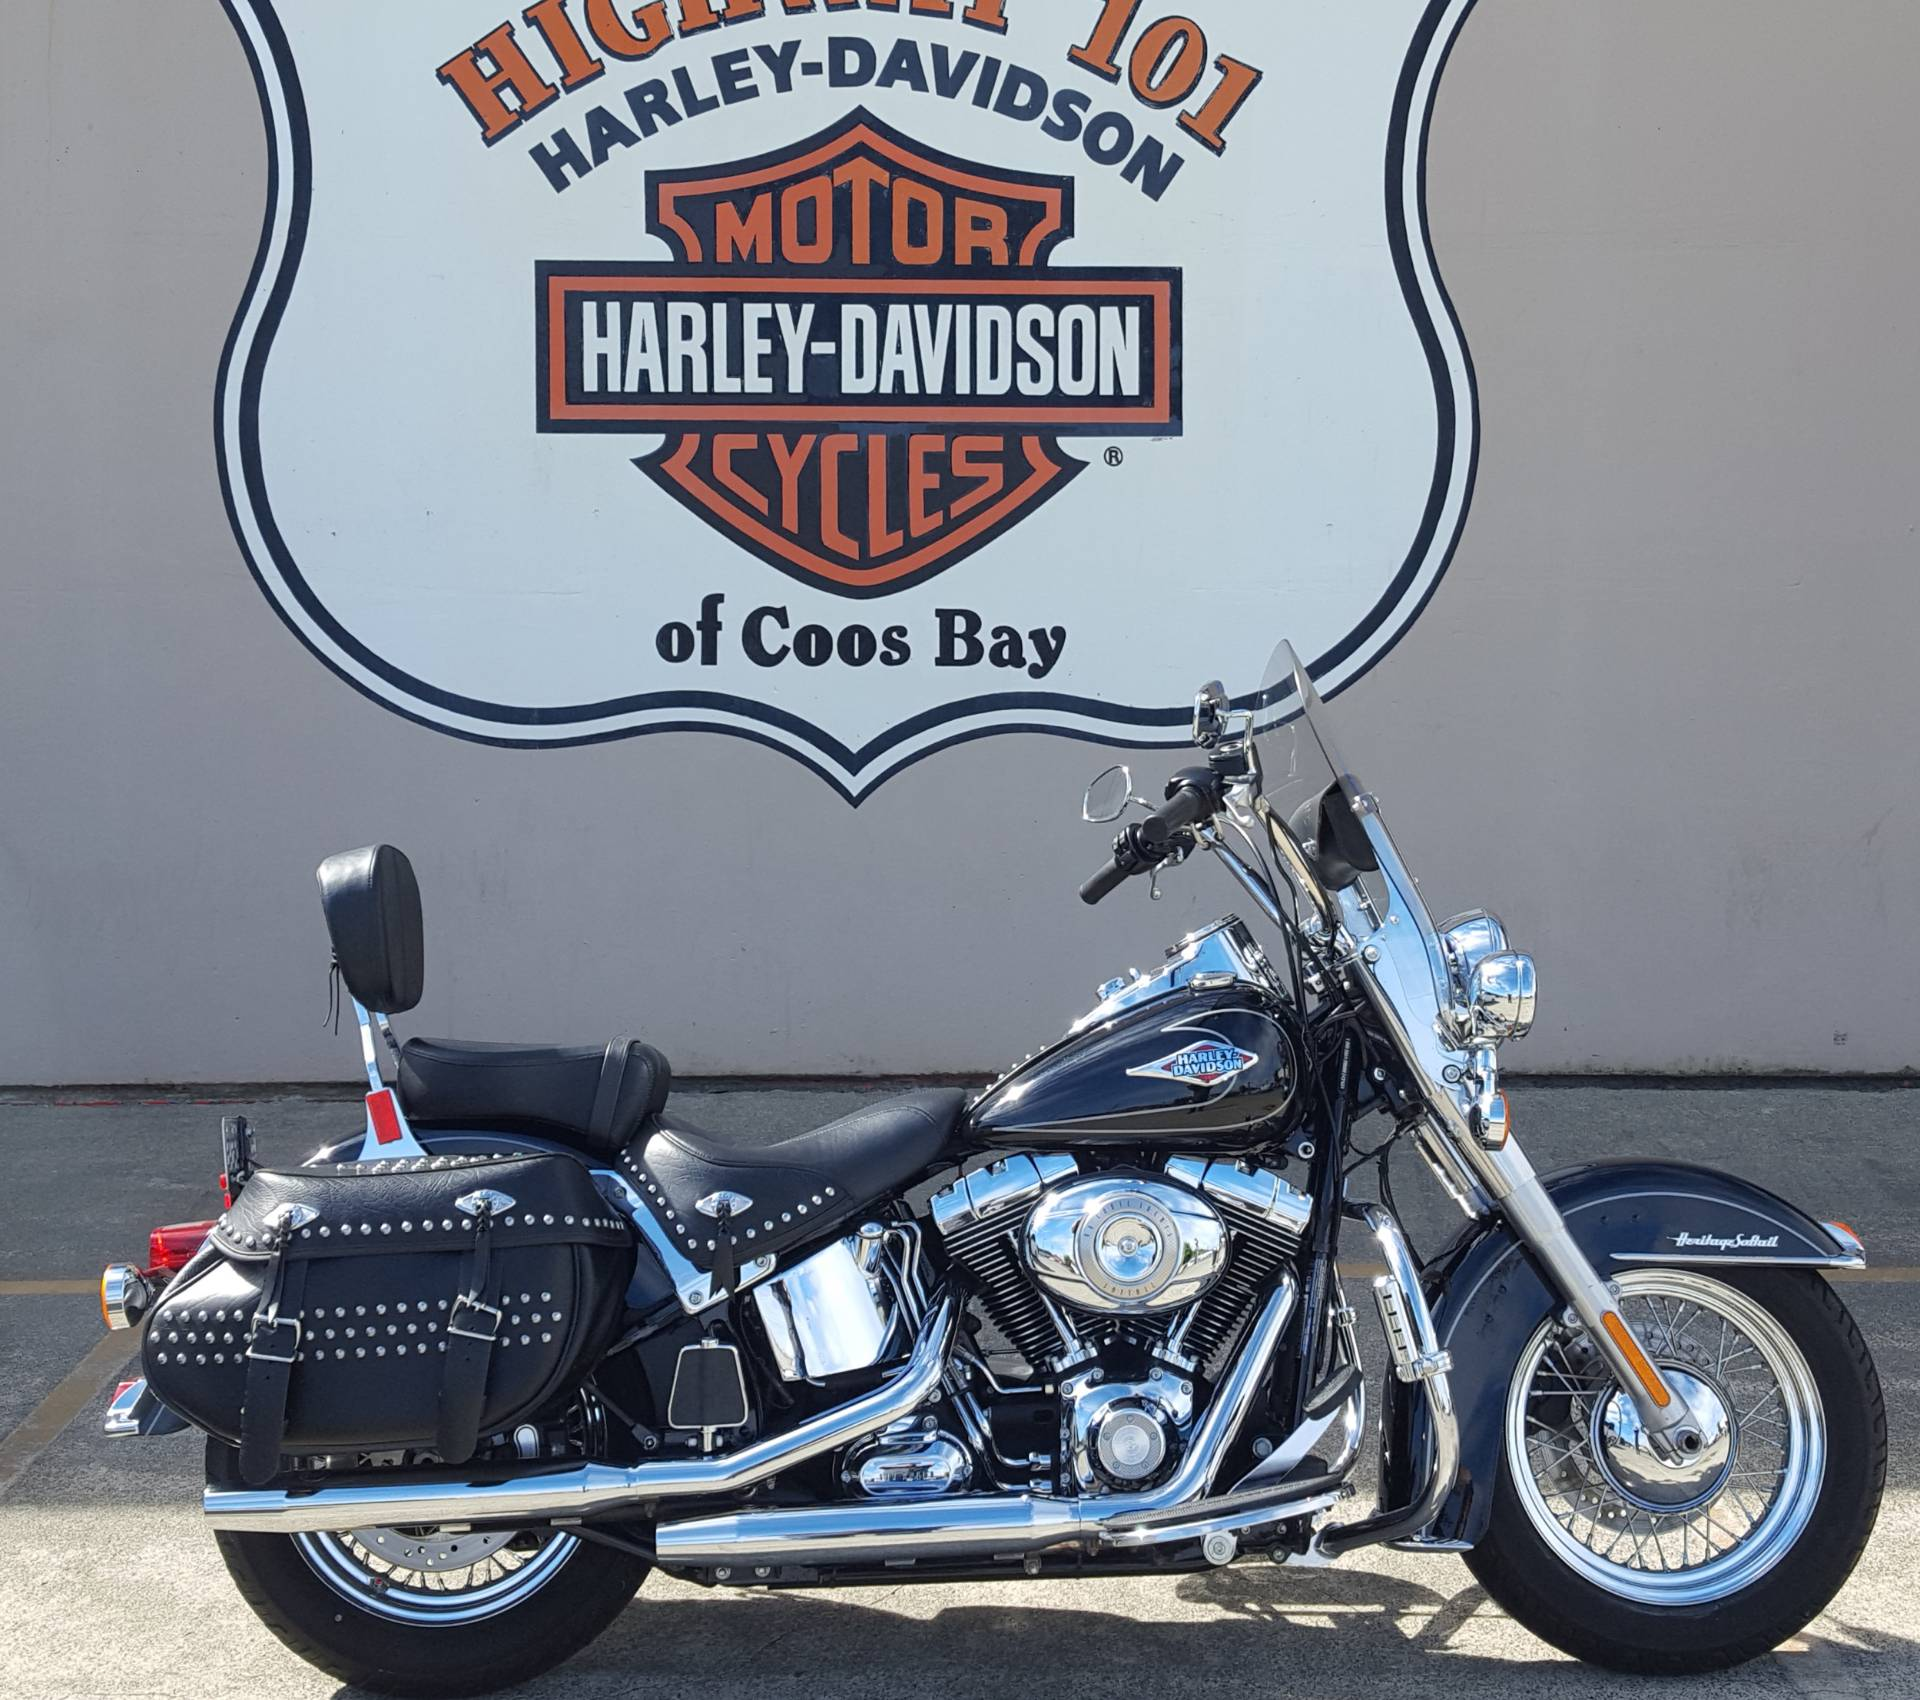 2011 Harley-Davidson Heritage Softail® Classic in Coos Bay, Oregon - Photo 1